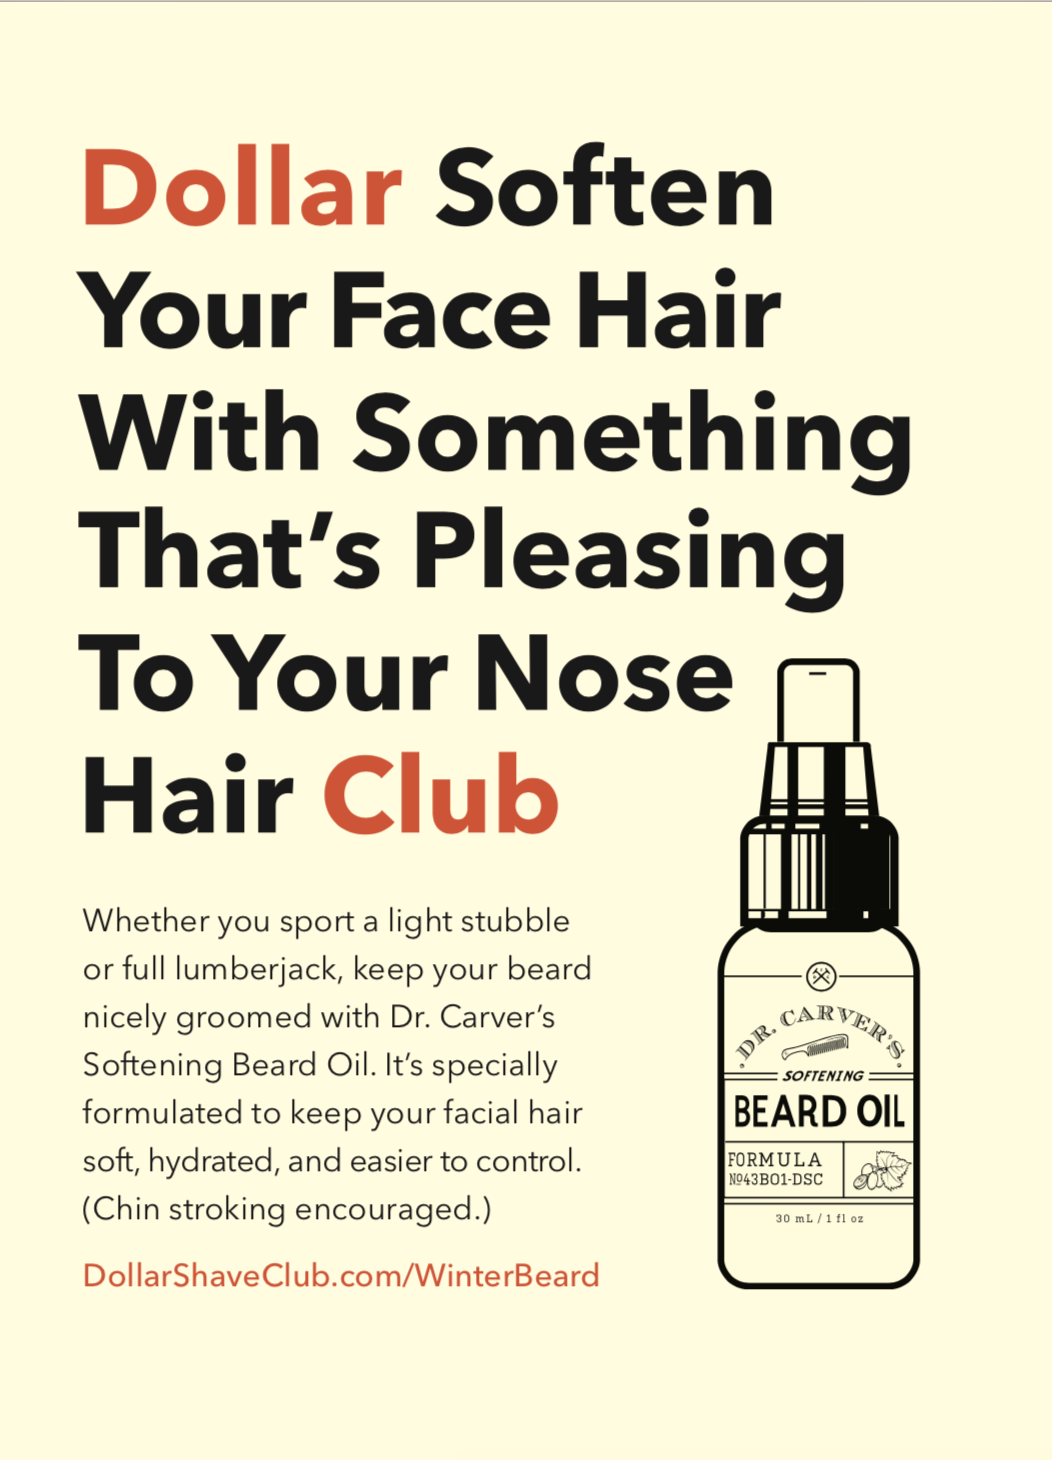 Mel Magazine print ad for DSC Beard Oil.